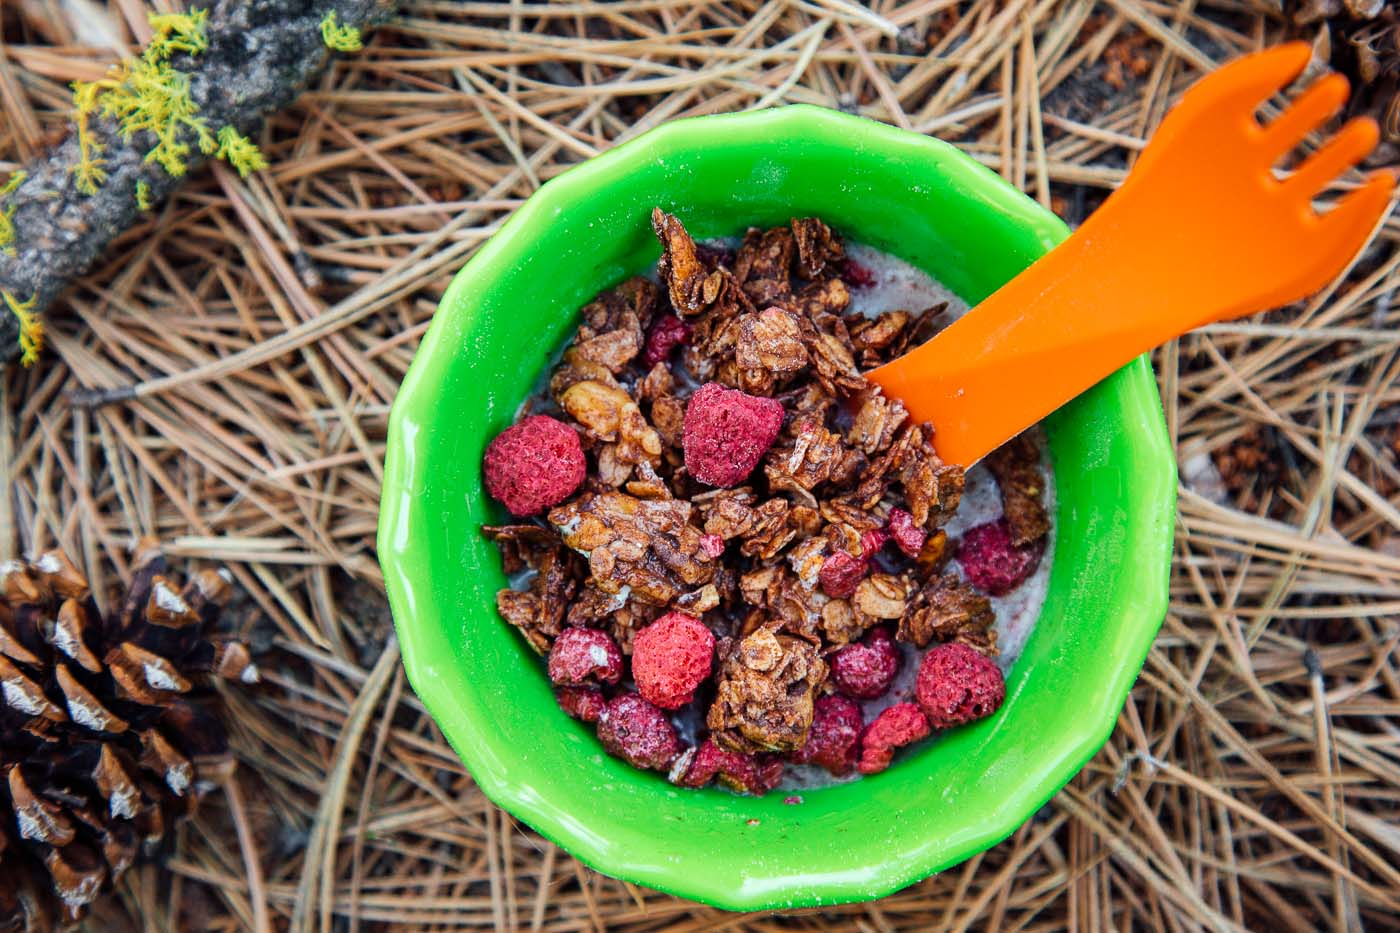 Coconut chocolate granola dotted with raspberries in a green bowl